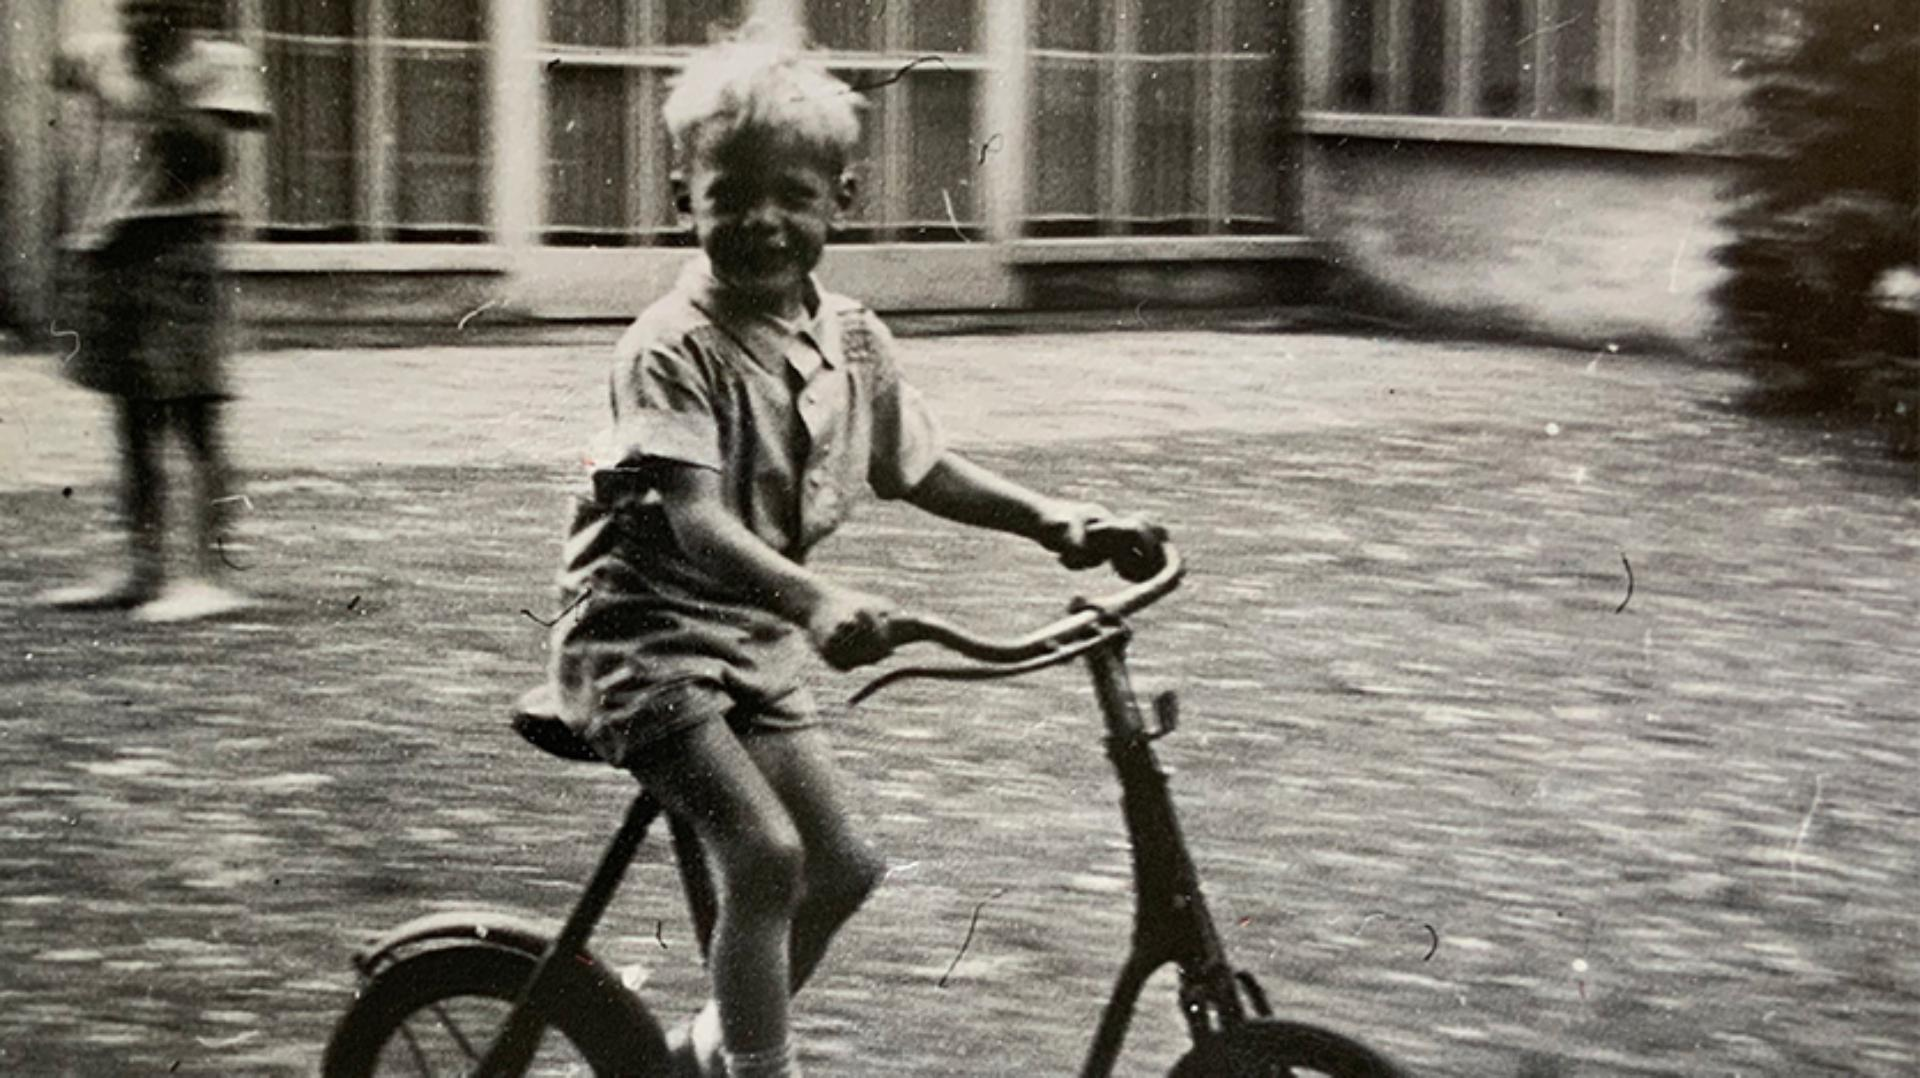 Young James Dyson cycling a small Triang bike